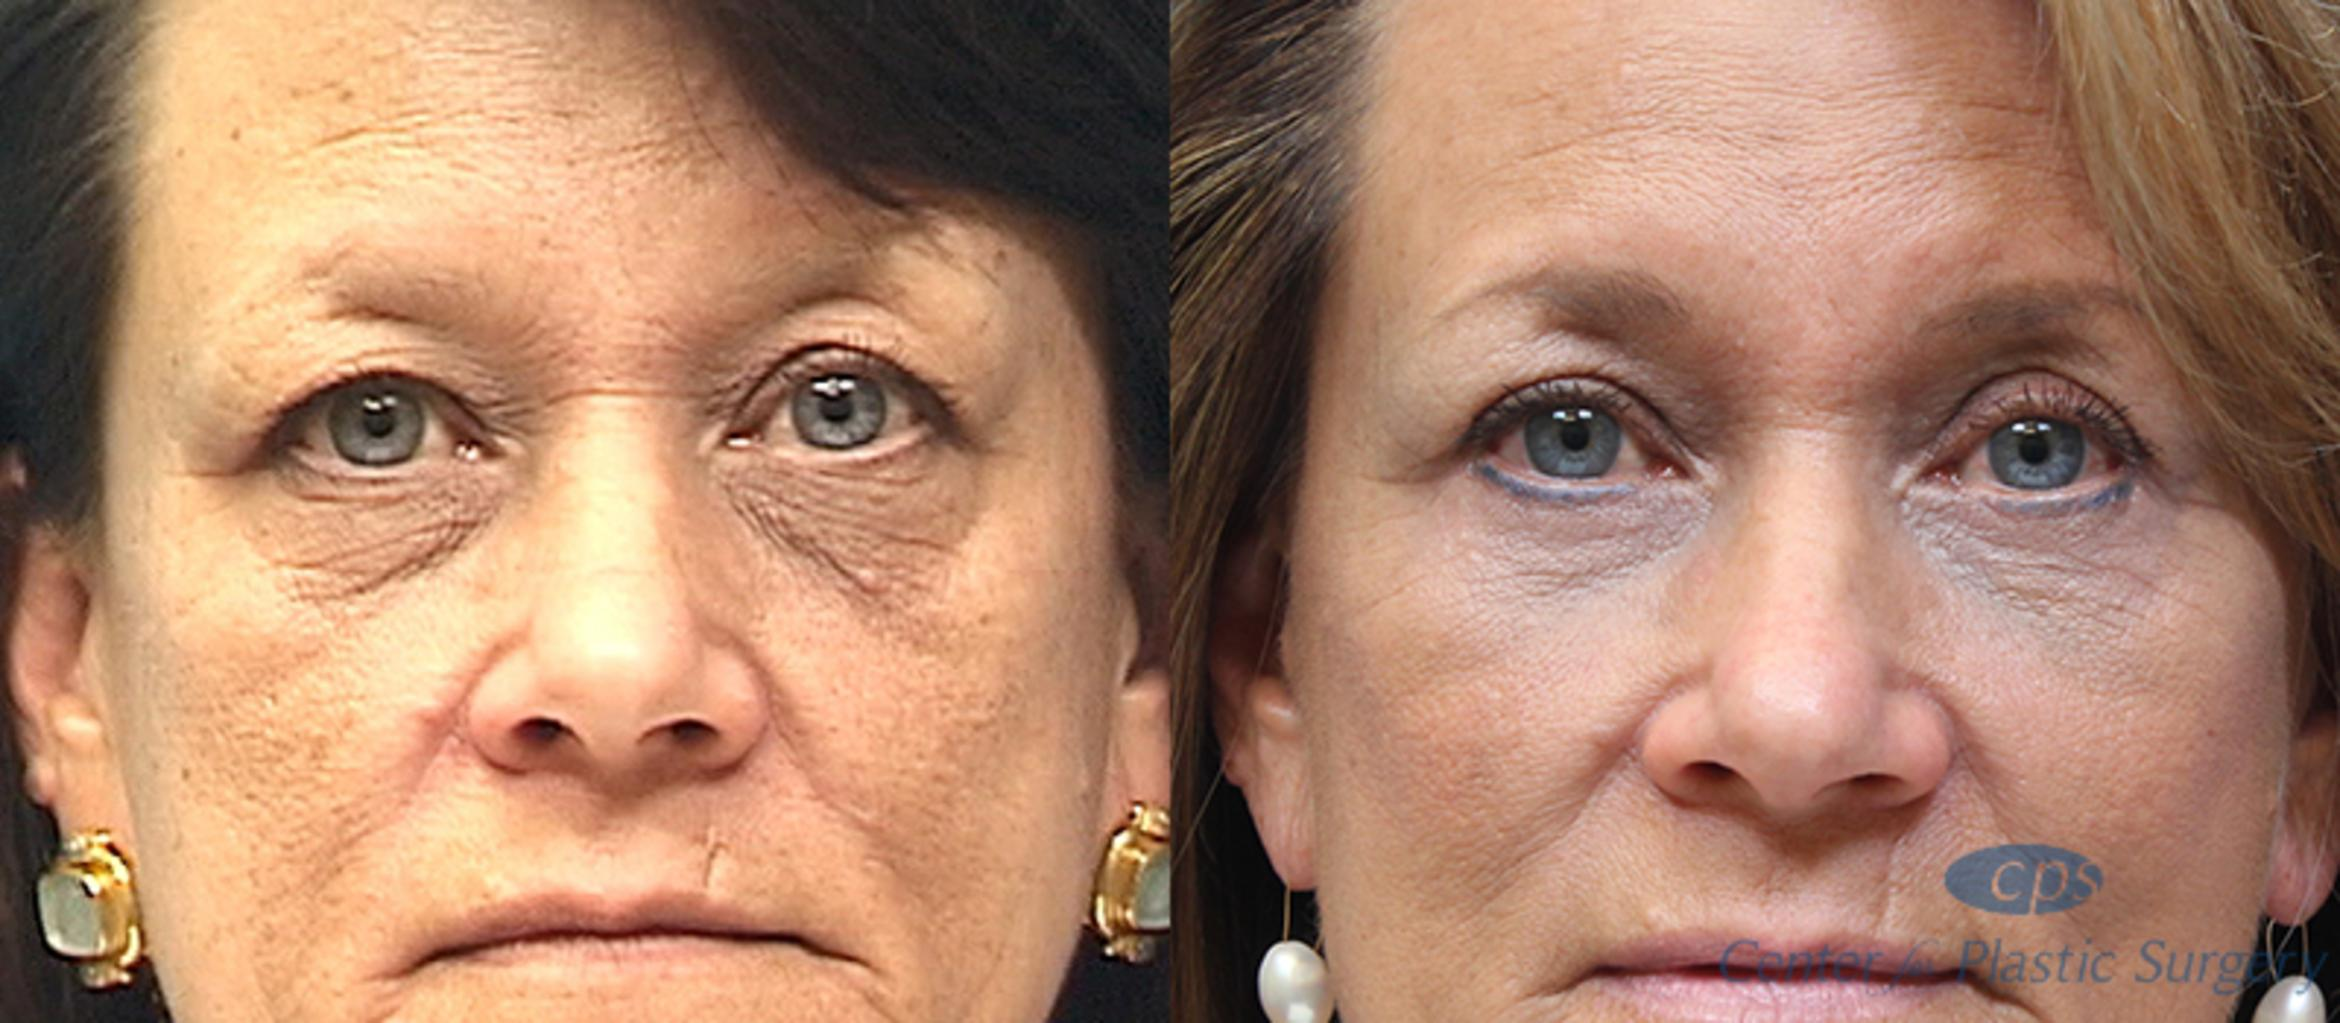 Eyelid Surgery Case 22 Before & After Front | Annandale, VA & Chevy Chase, MD, Washington D.C. Metropolitan Area | Center for Plastic Surgery